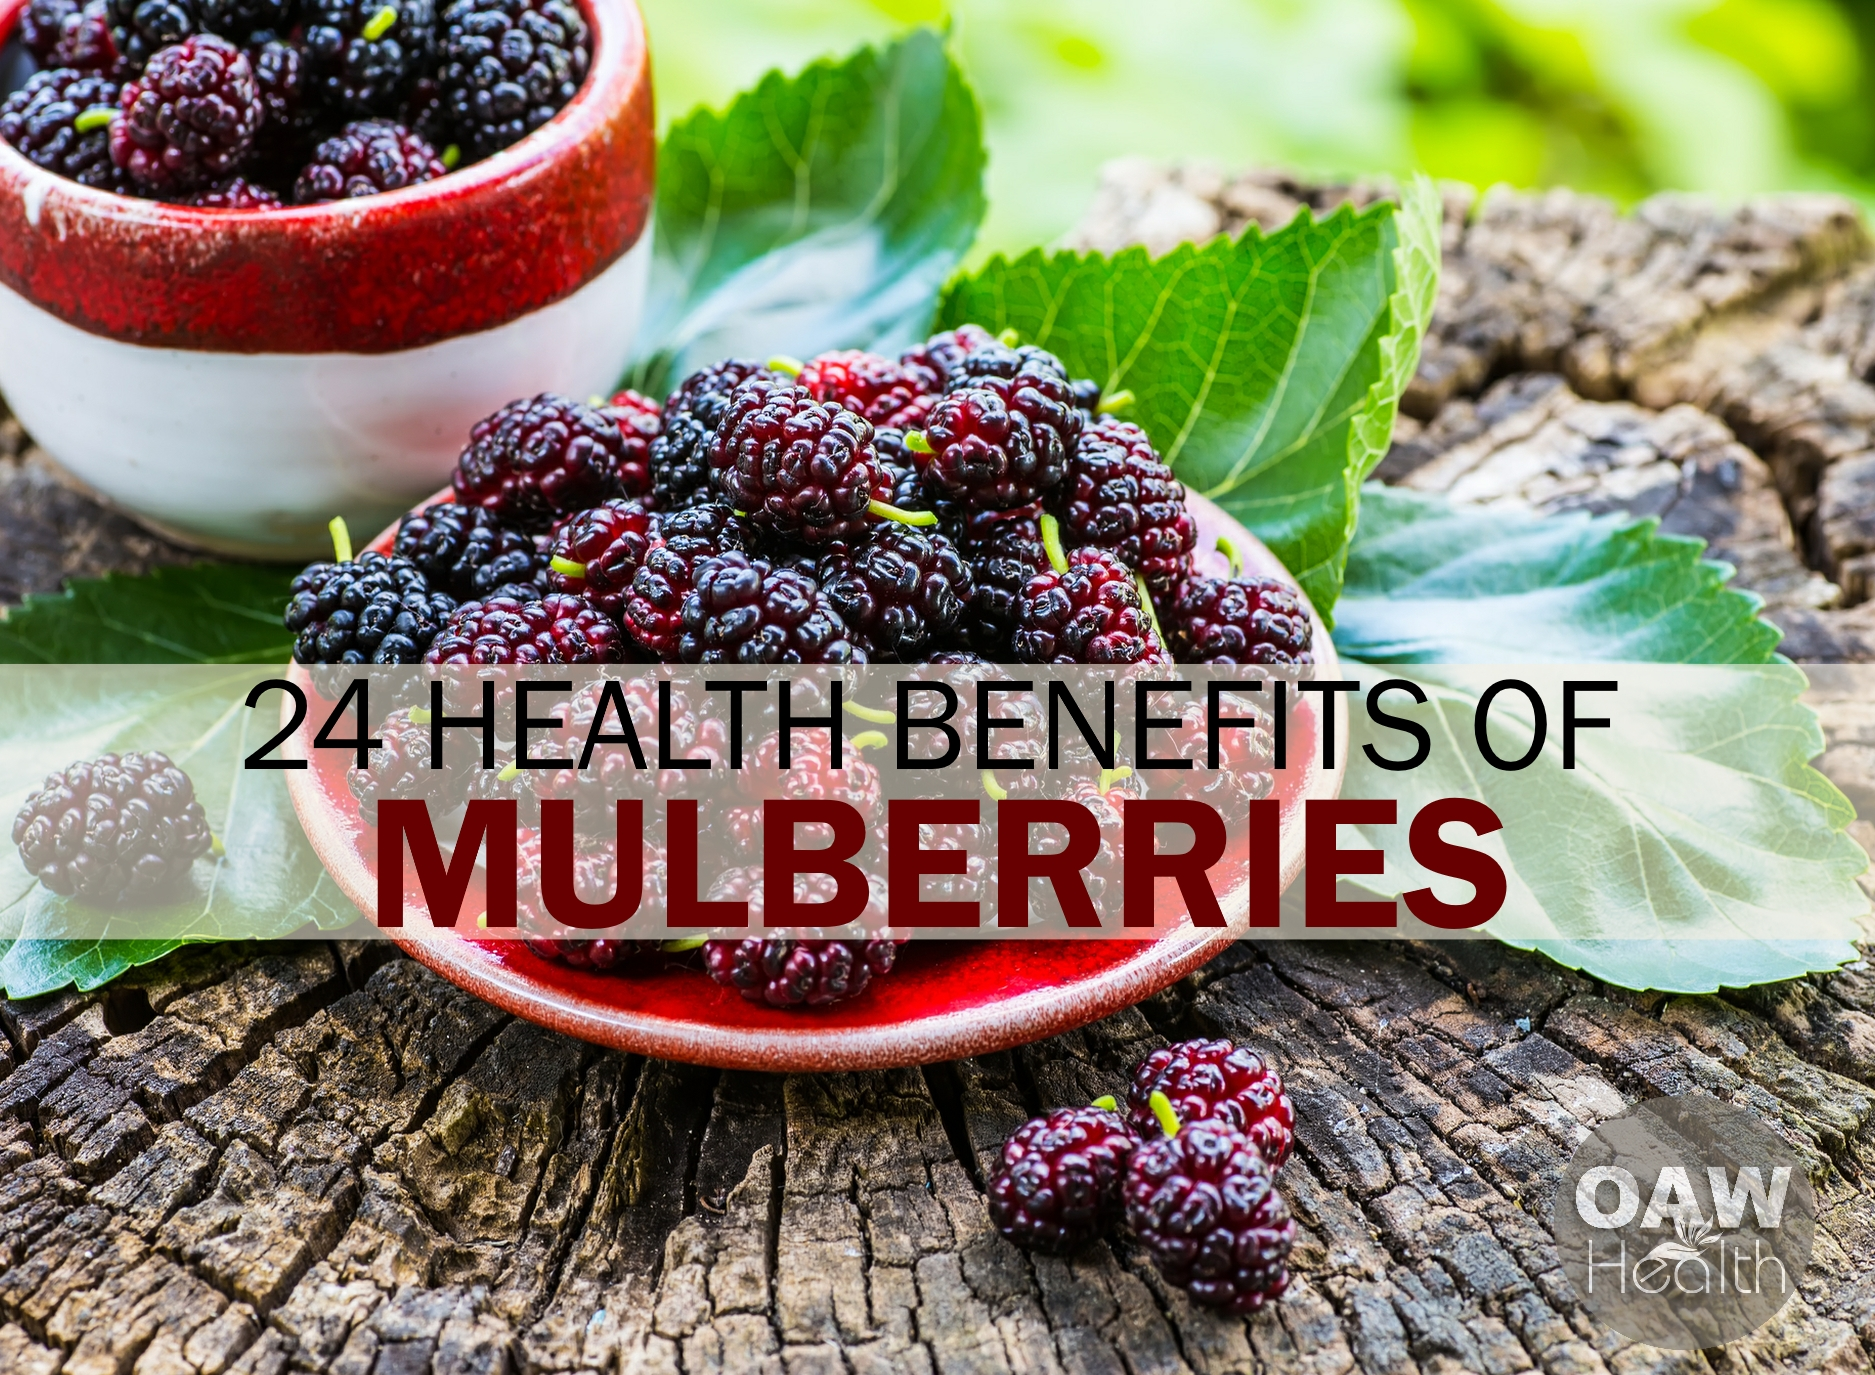 24 Outstanding Health Benefits of Mulberries